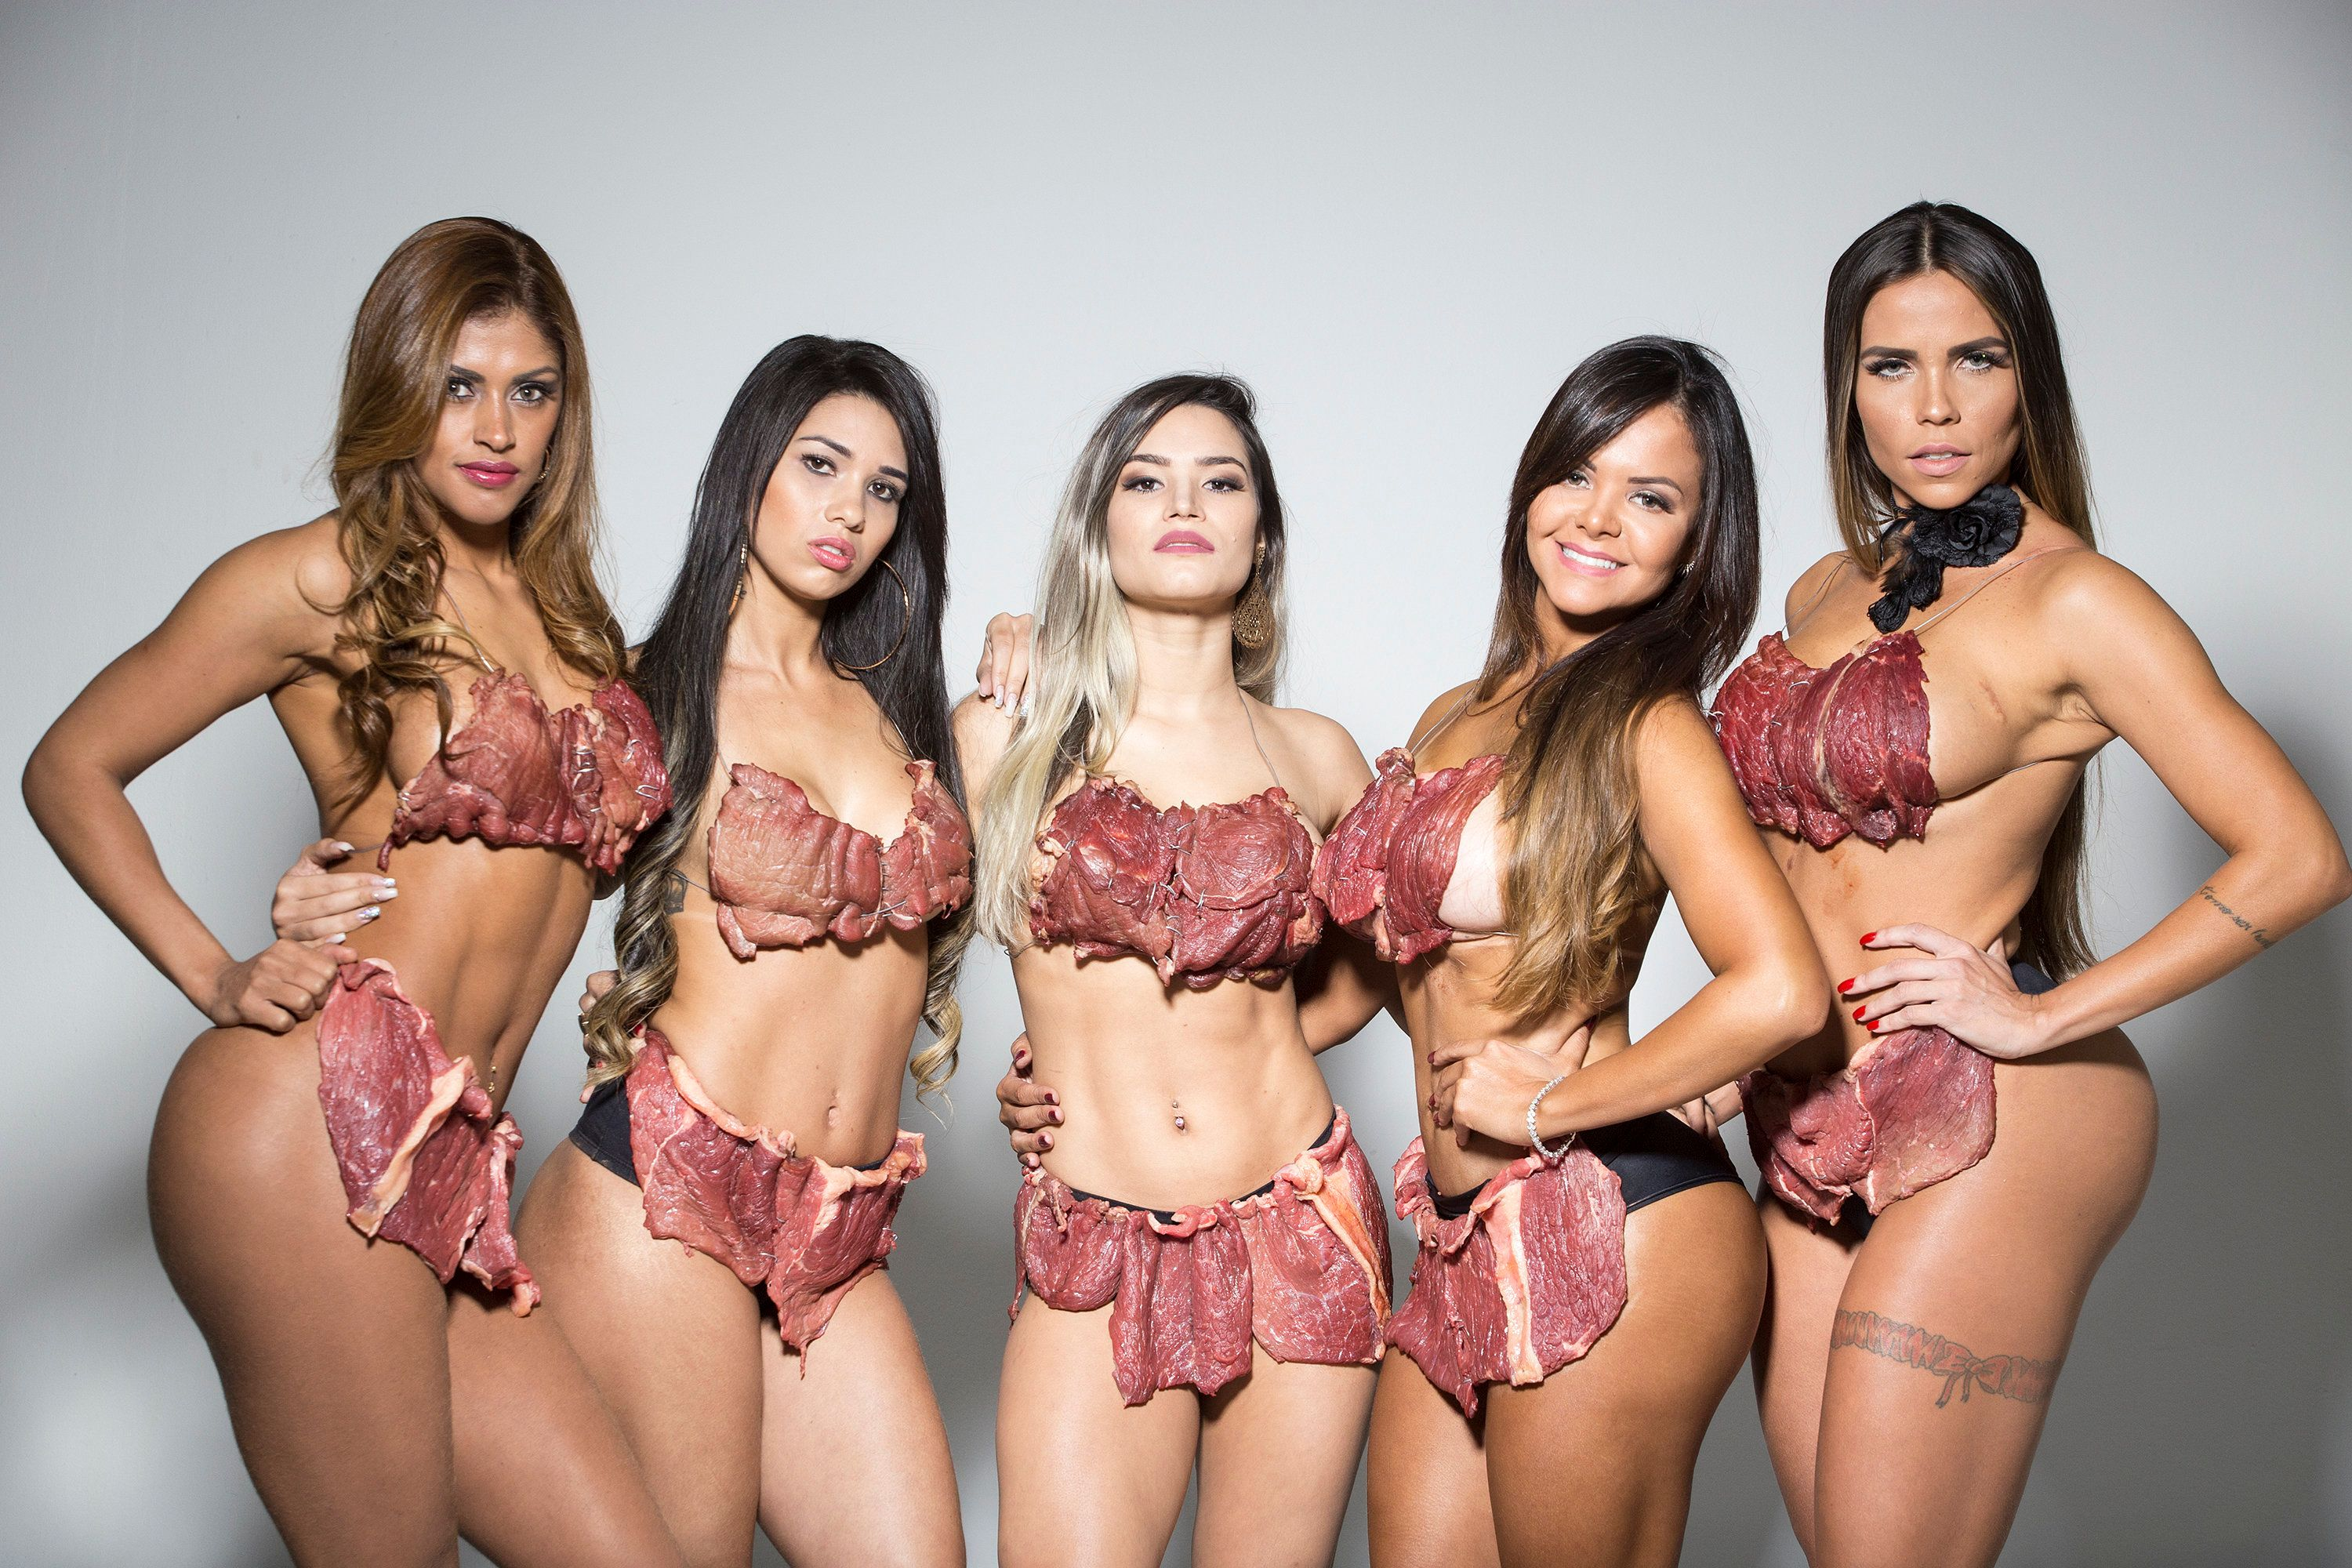 Miss Bumbum Brazil Contestants Wear 'Beef-kinis' To Protest Sexual